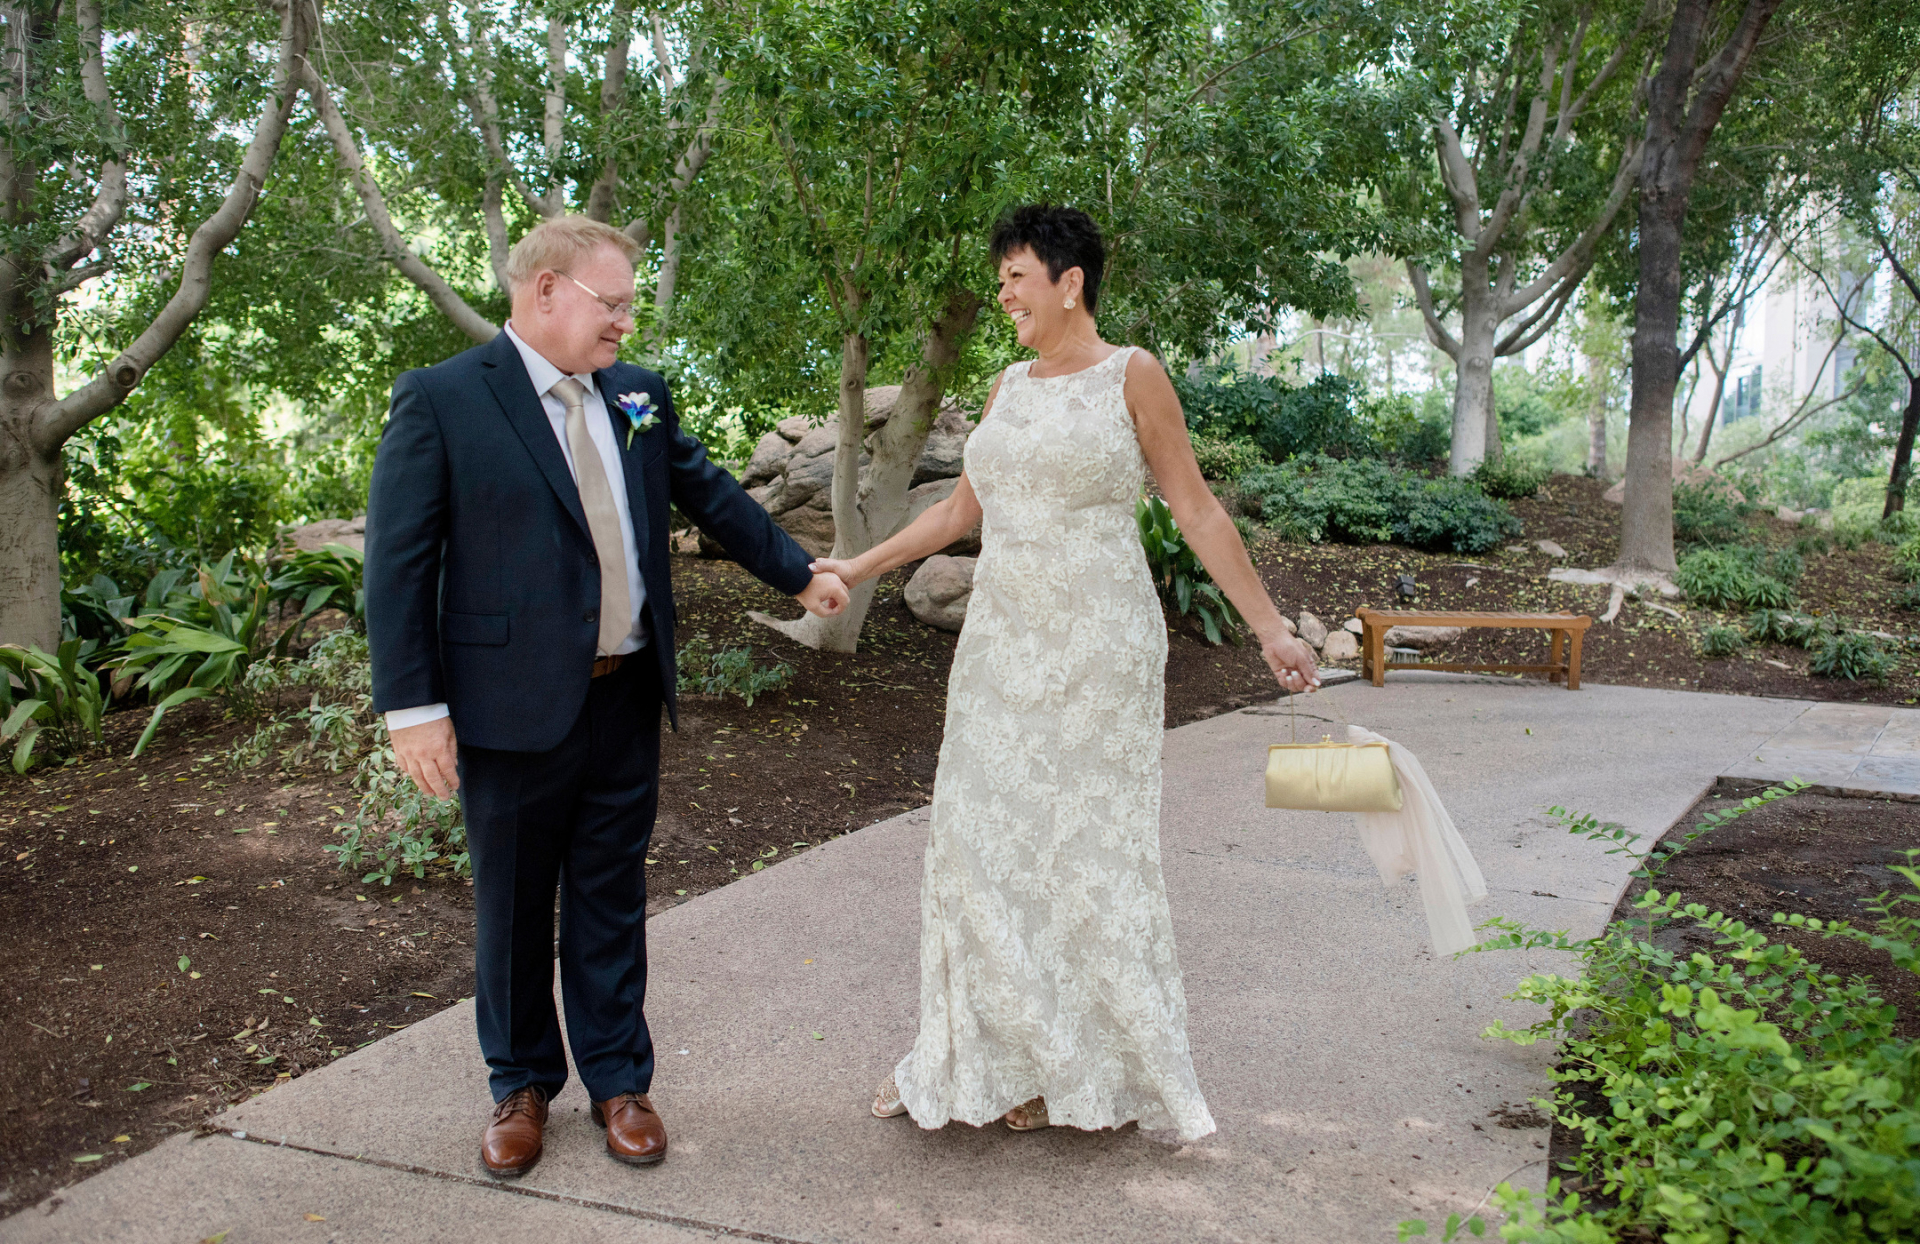 Japanese Friendship Garden, Phoenix, AZ Elopement Photography | The bride grabs the groom's hand, a huge smile on her face, as she happily swings her clutch.